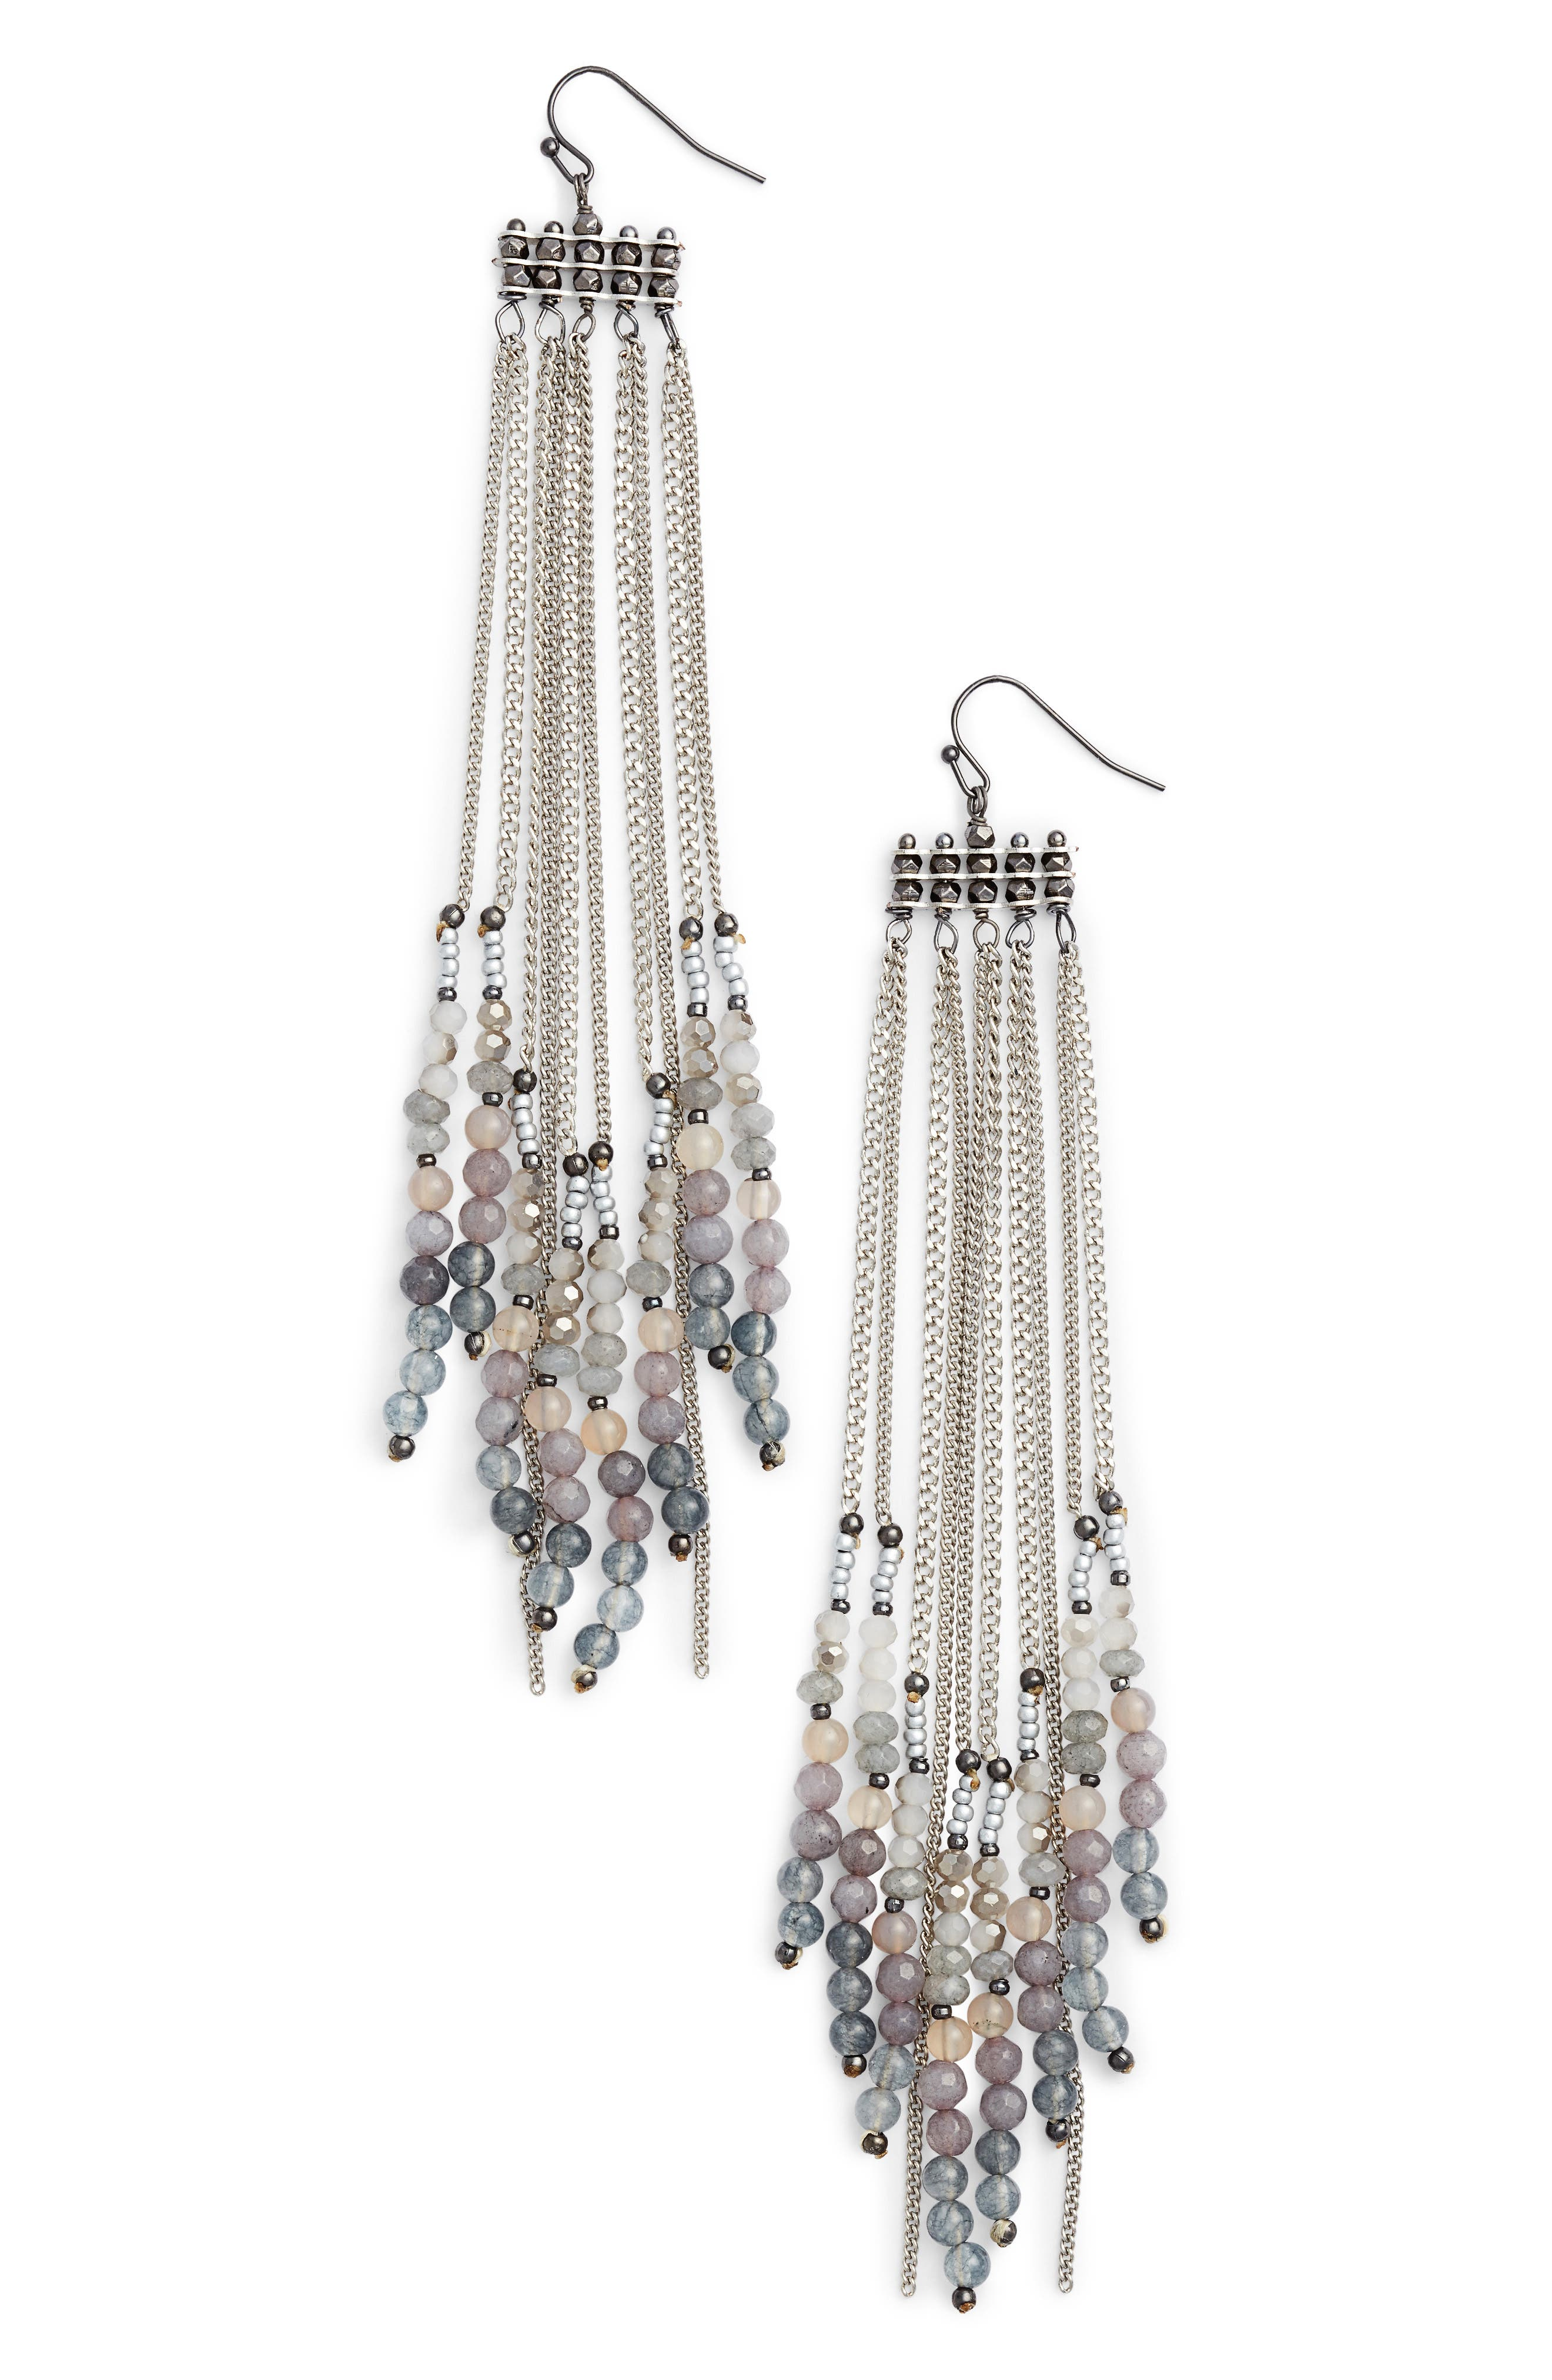 Chain Shoulder Duster Earrings,                             Main thumbnail 1, color,